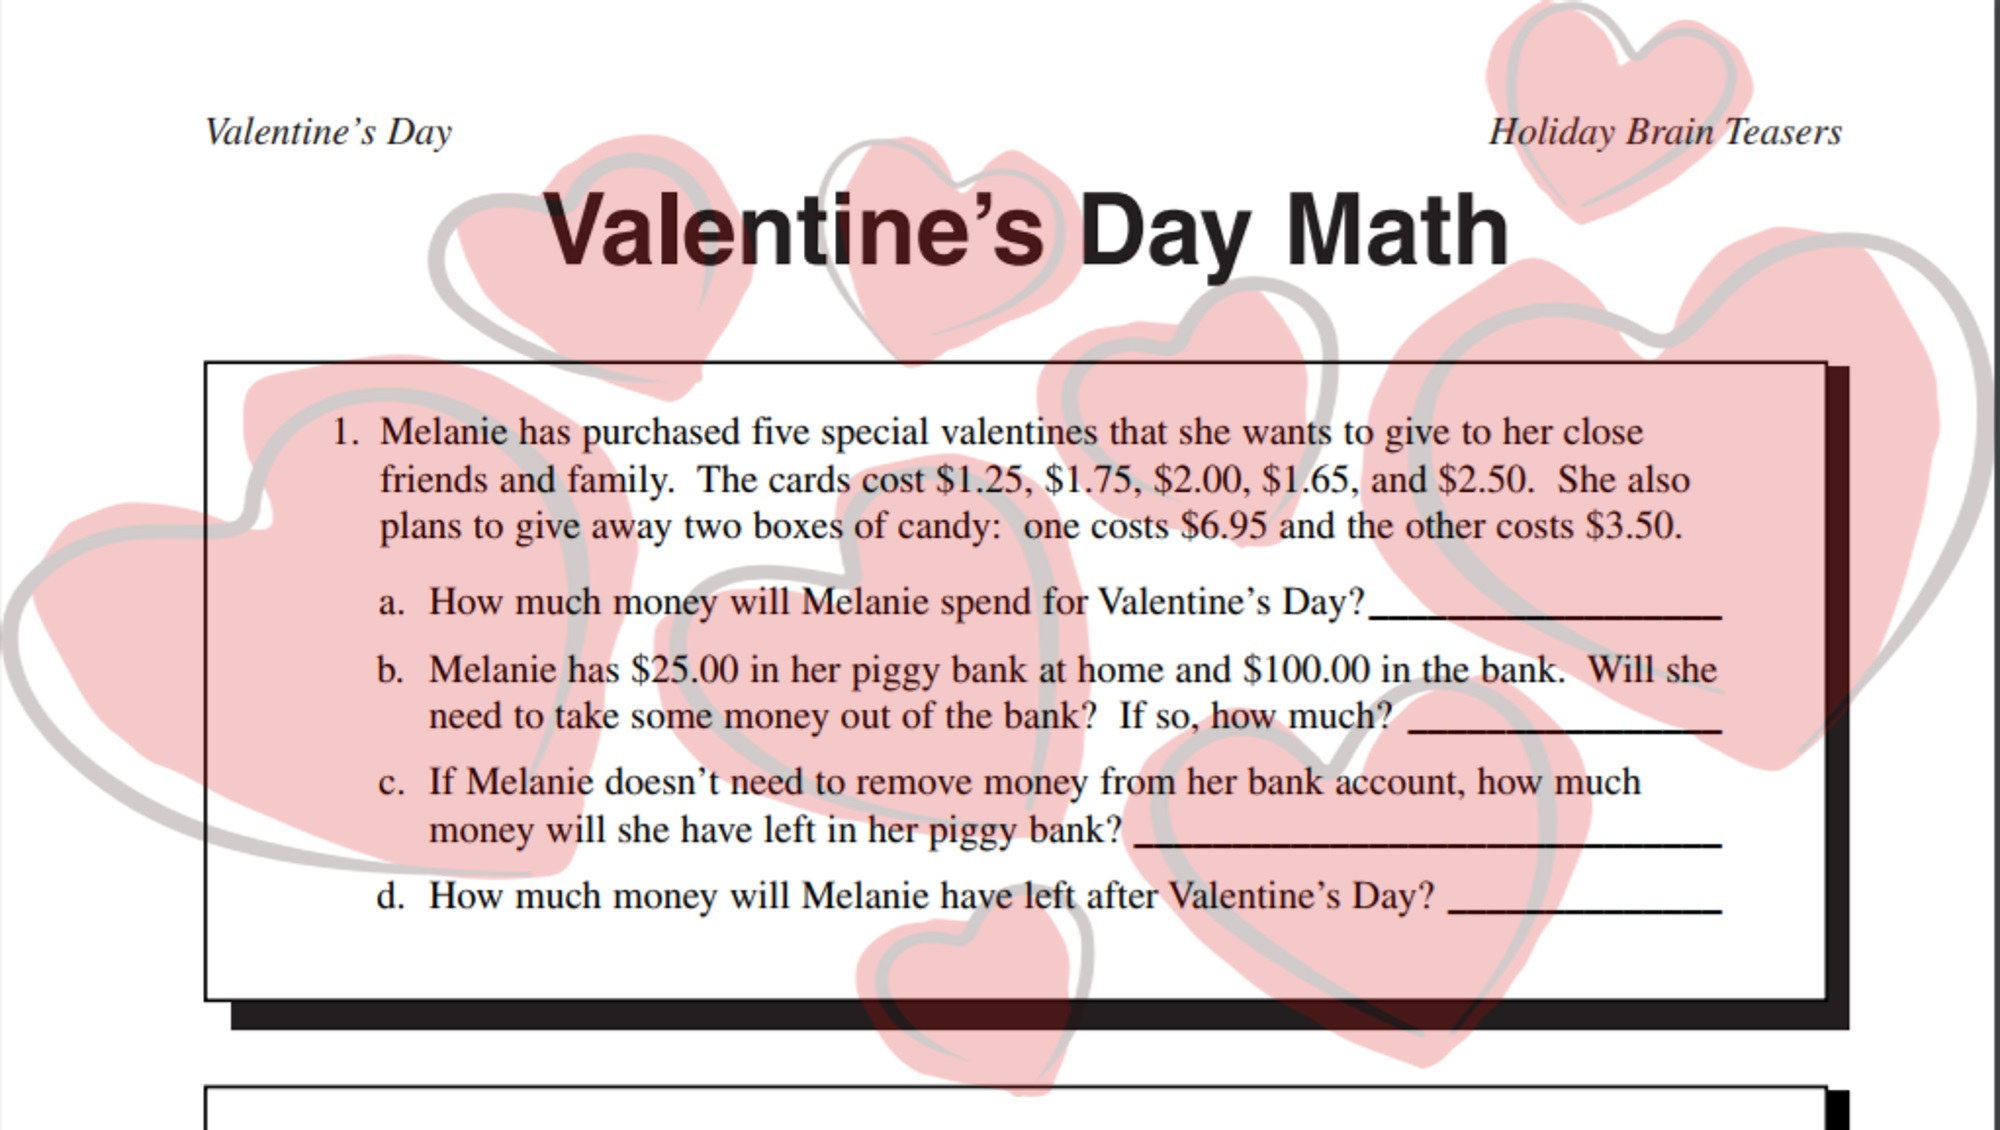 Valentine's Day Math Word Problems